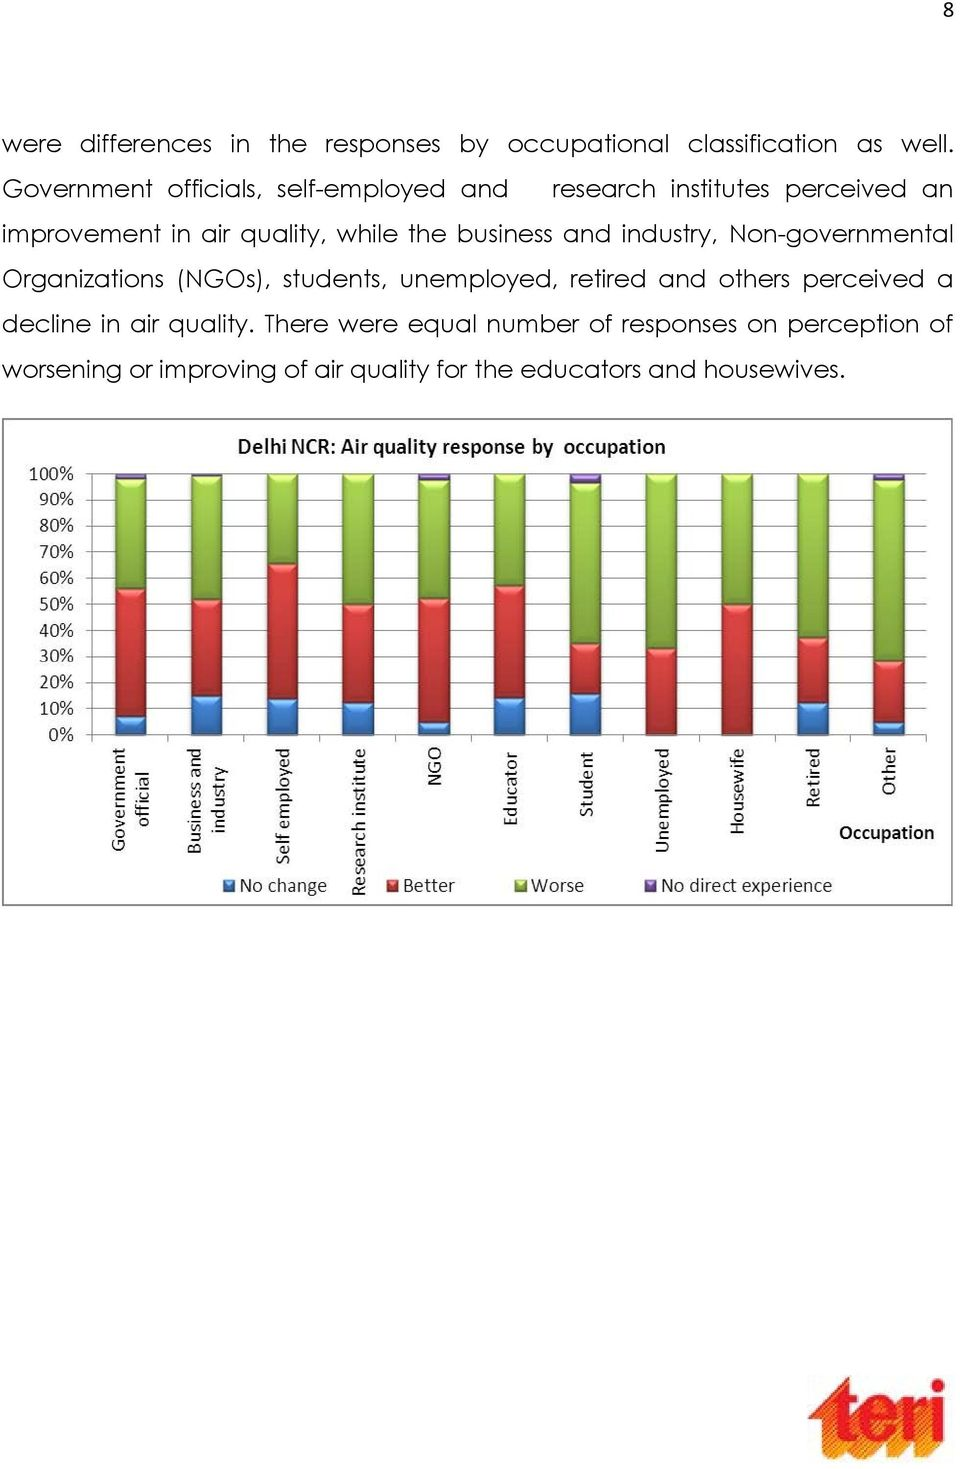 business and industry, Non-governmental Organizations (NGOs), students, unemployed, retired and others perceived